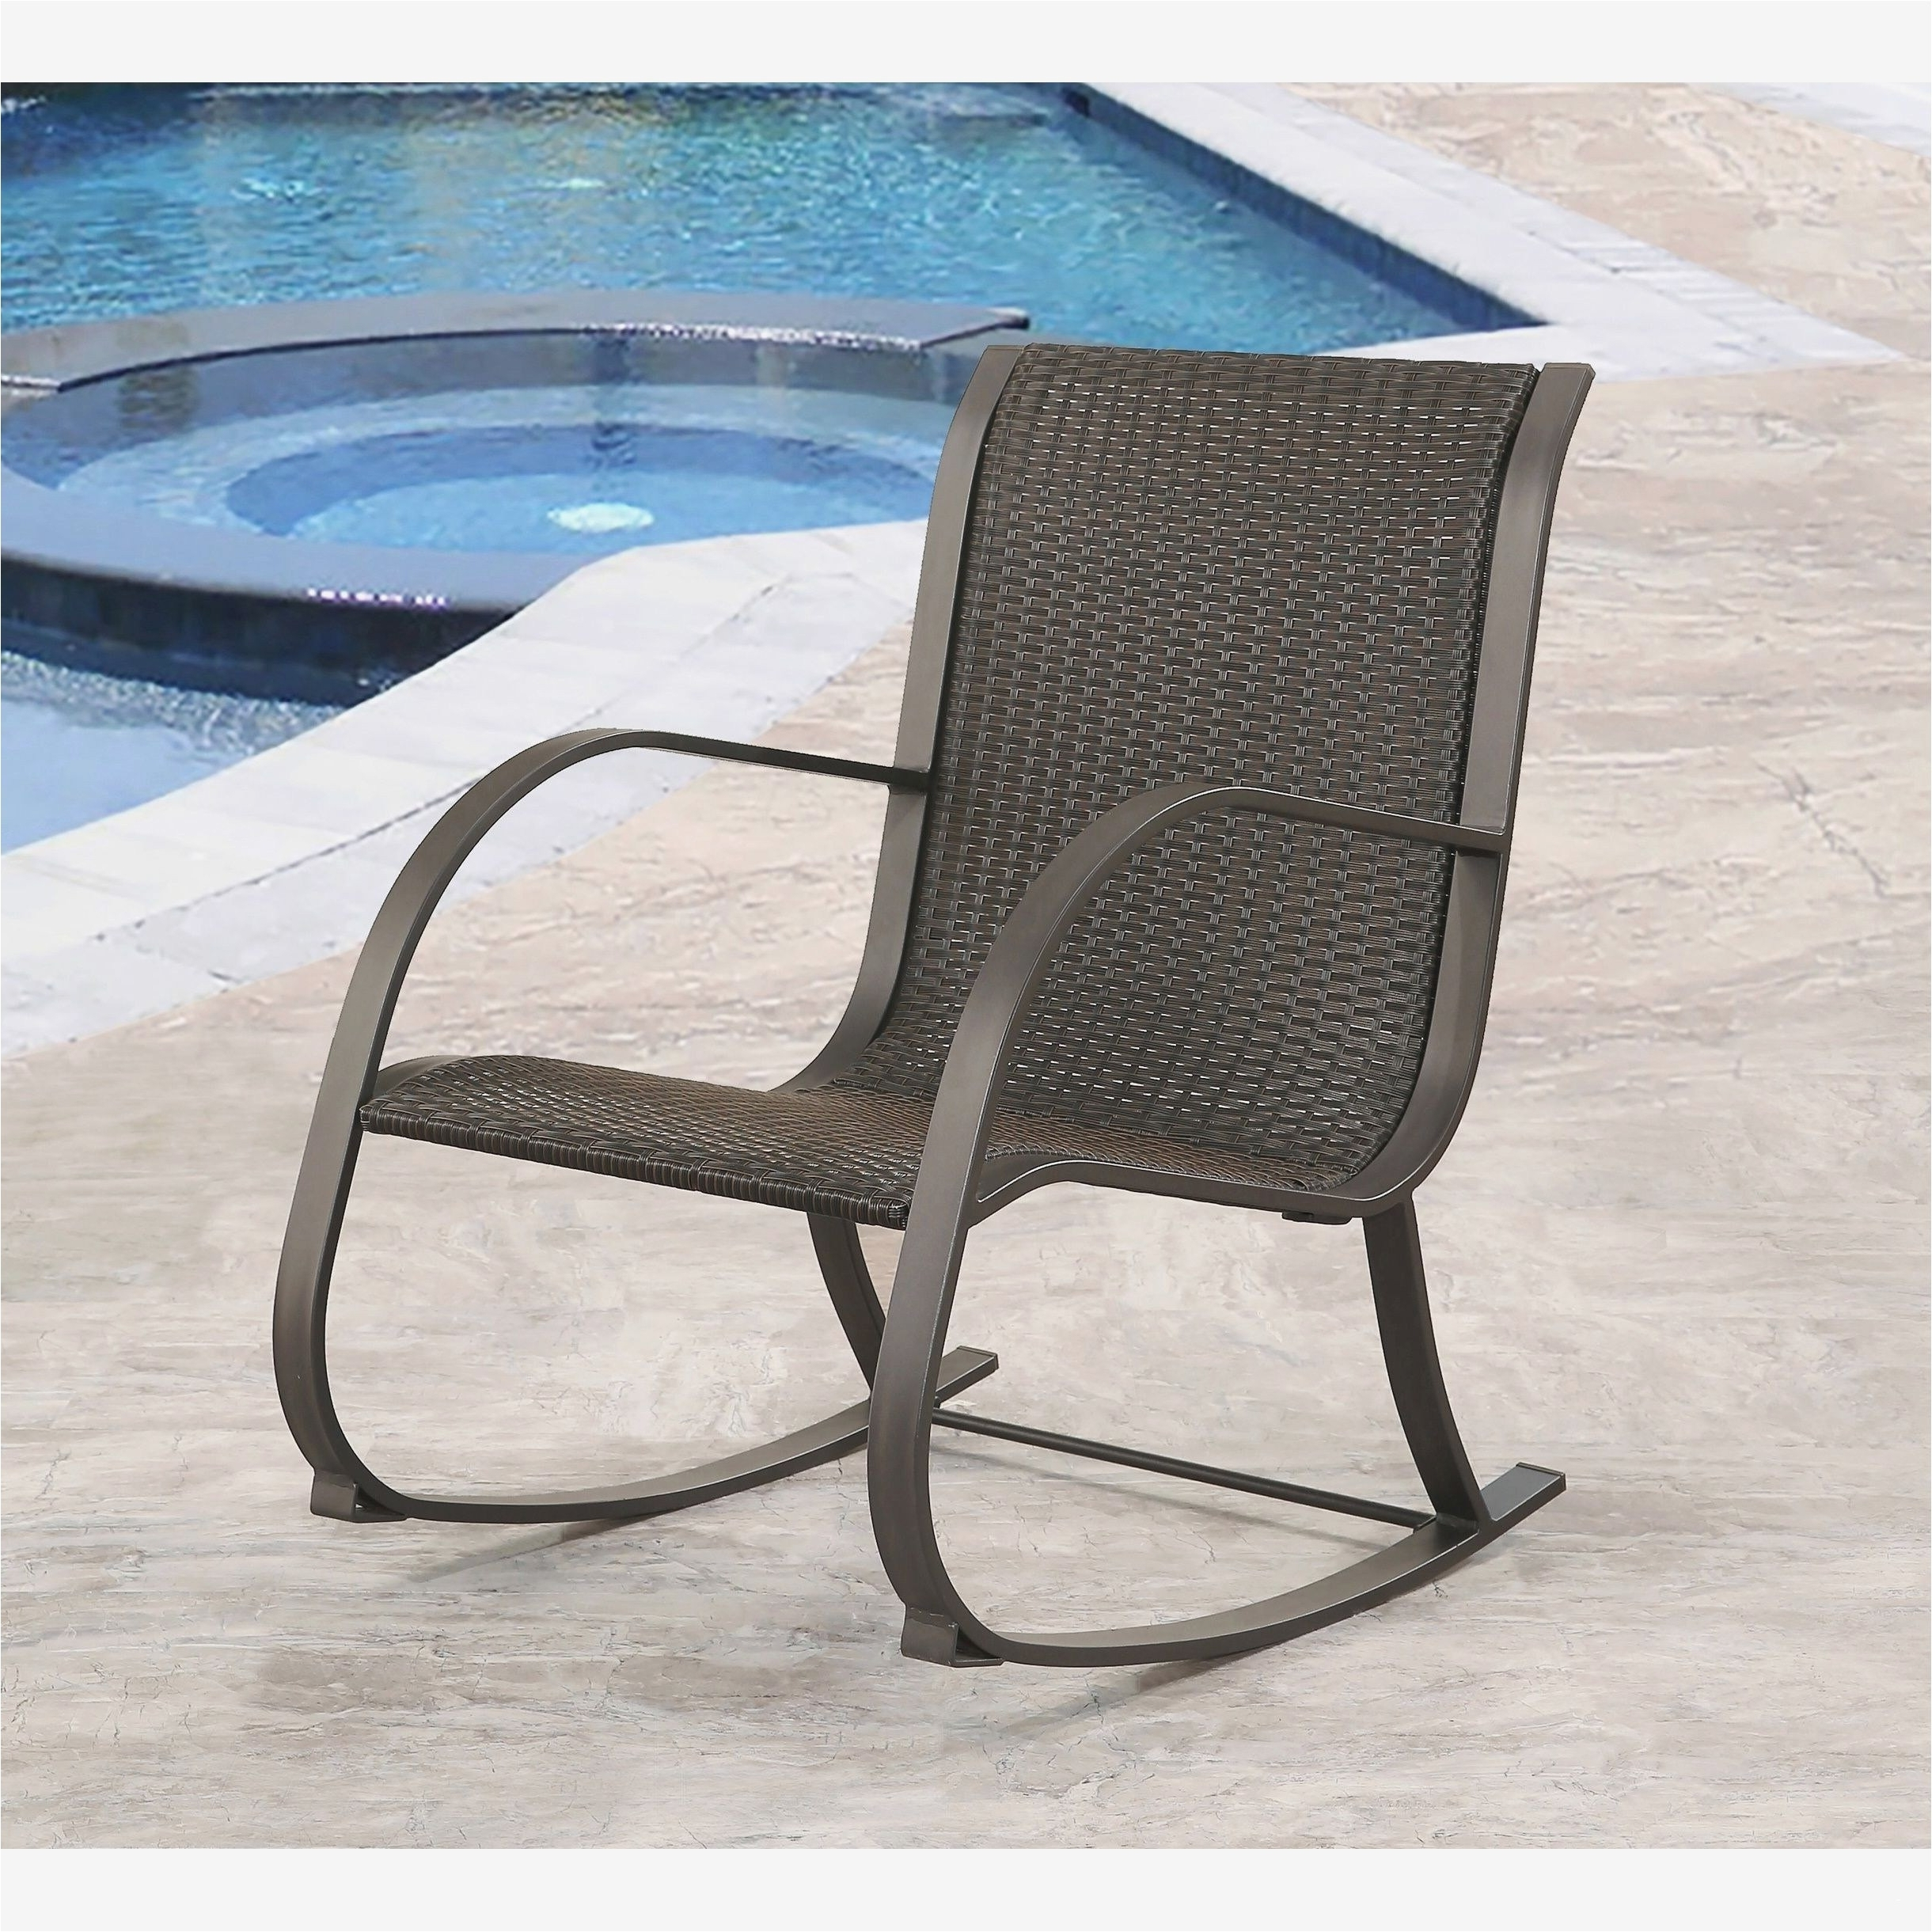 Modern Patio Rocking Chairs Intended For Popular Awesome Rocking Chairs Patio Furniture Bellevuelittletheatre Ideas (View 8 of 15)